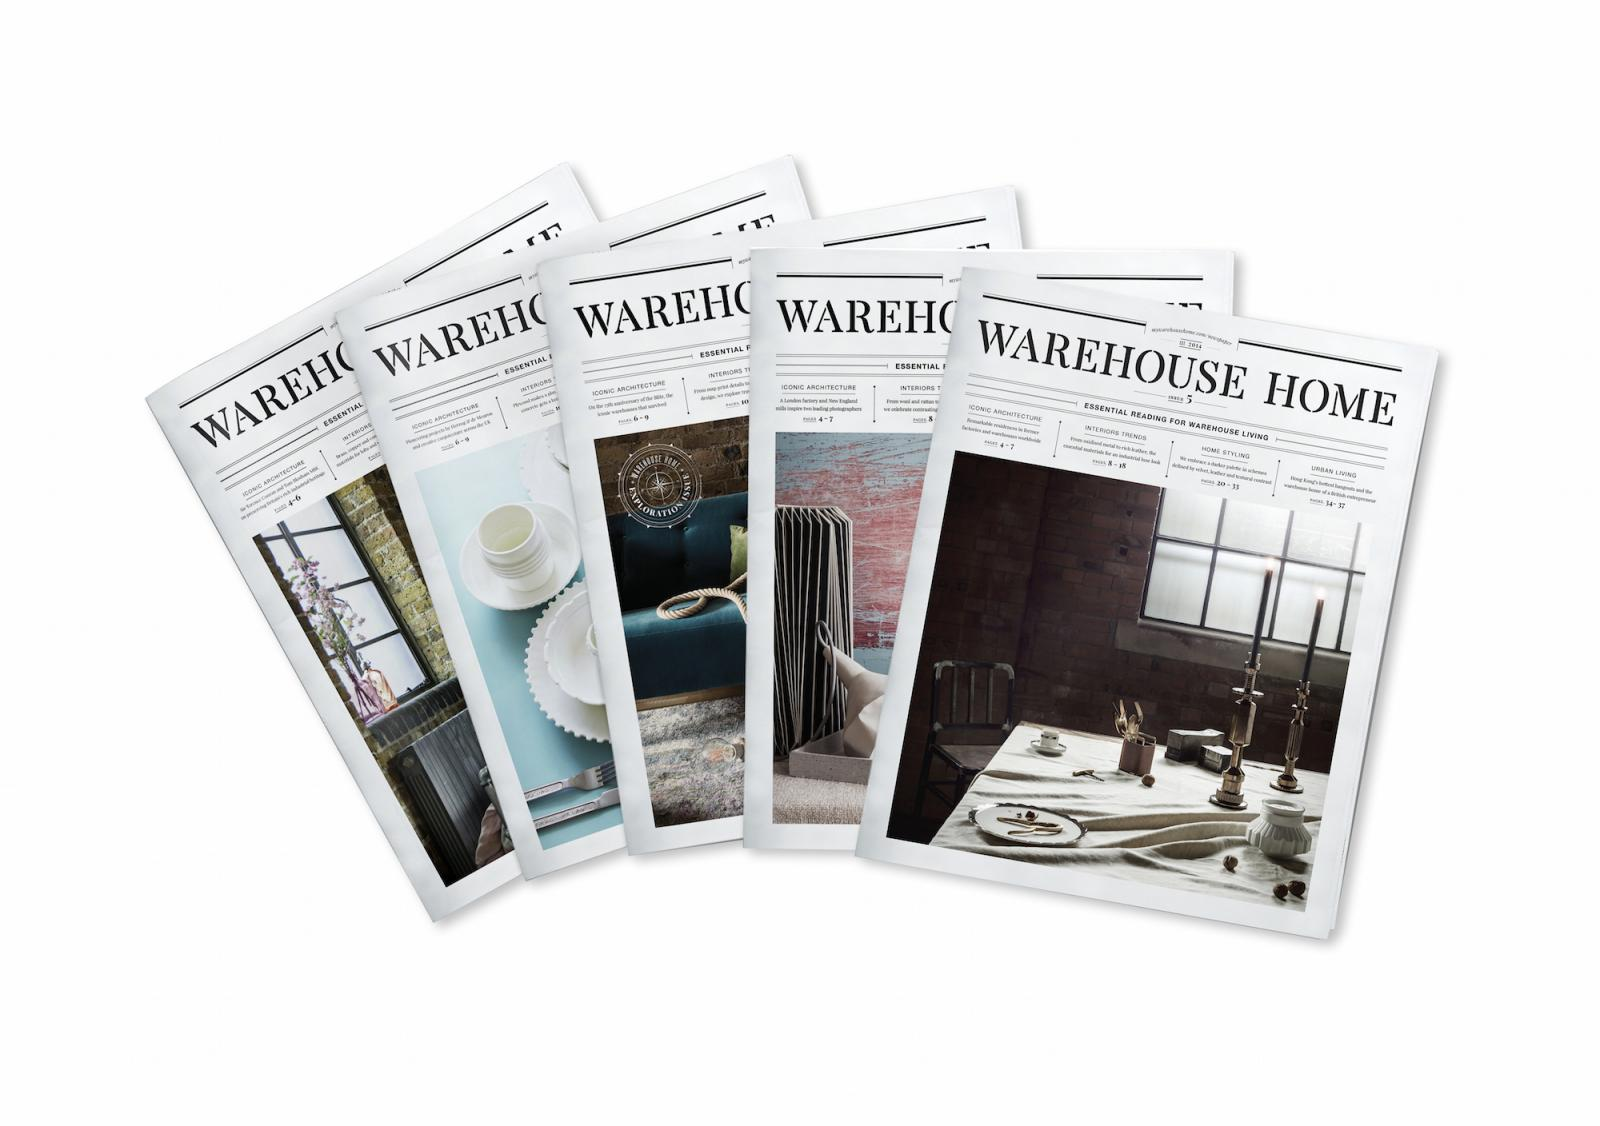 issues of My Warehouse Home Magazine